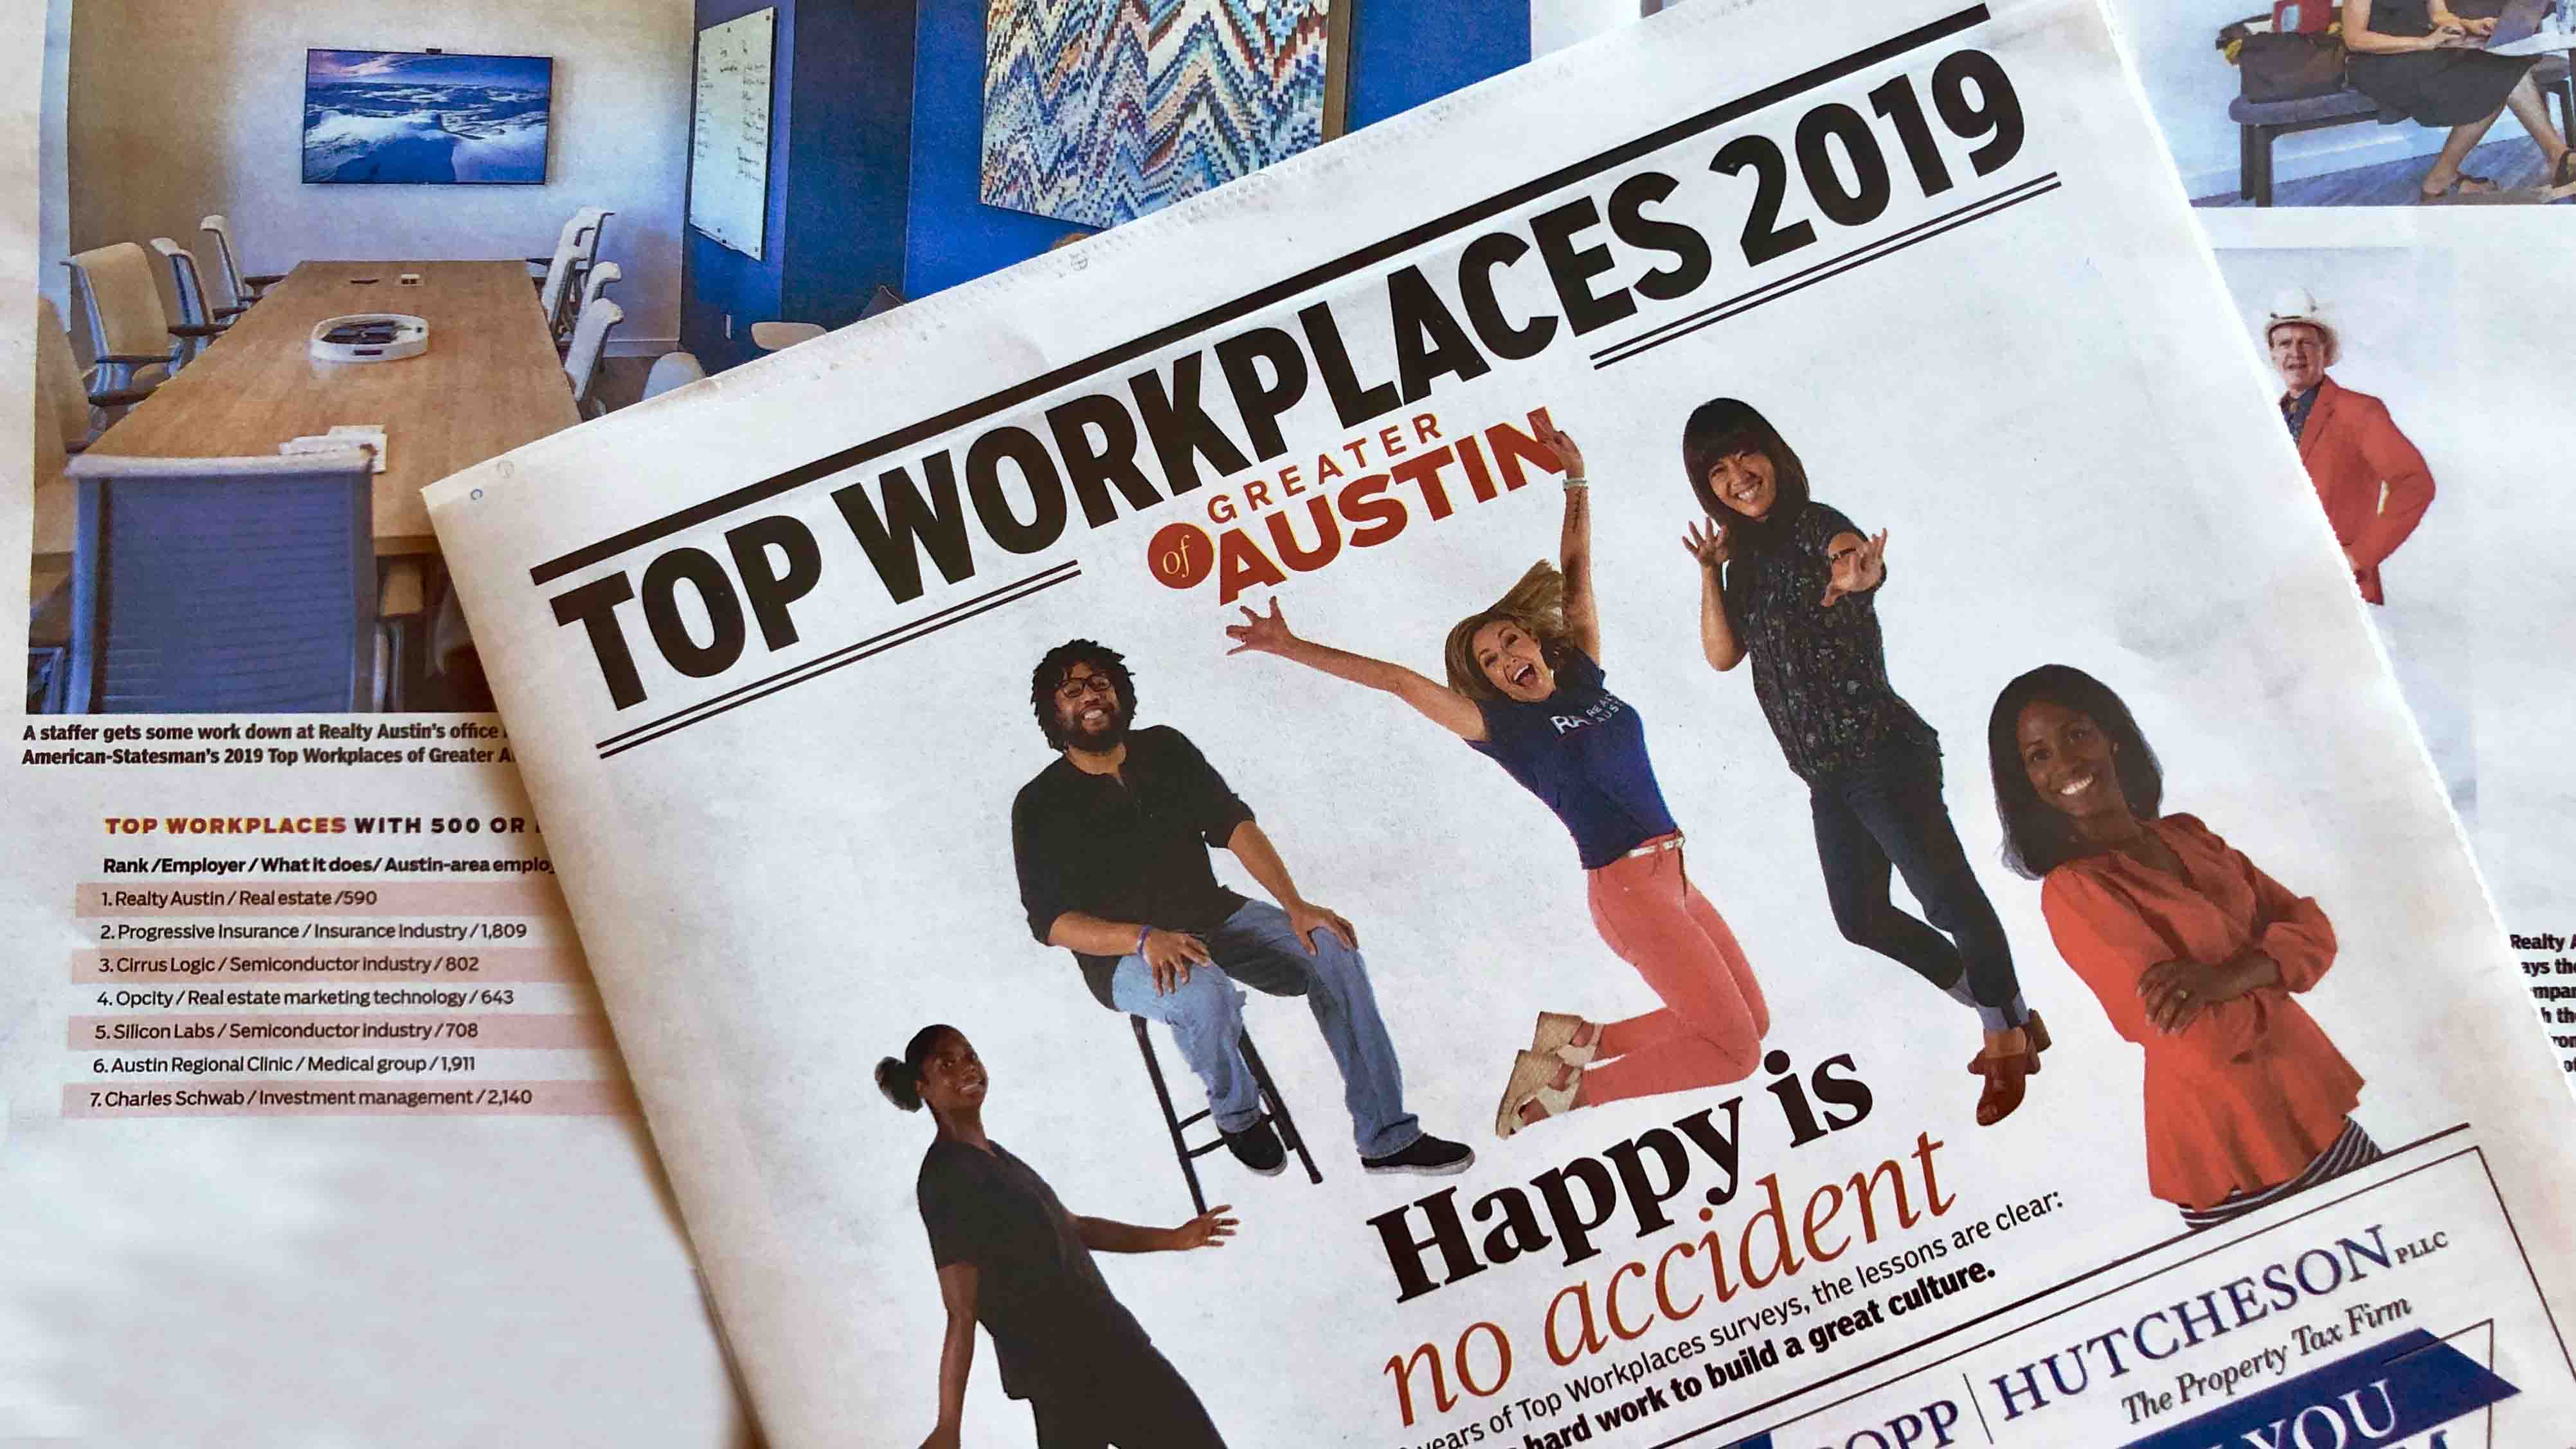 REALTY AUSTIN IS #1 TOP WORKPLACE